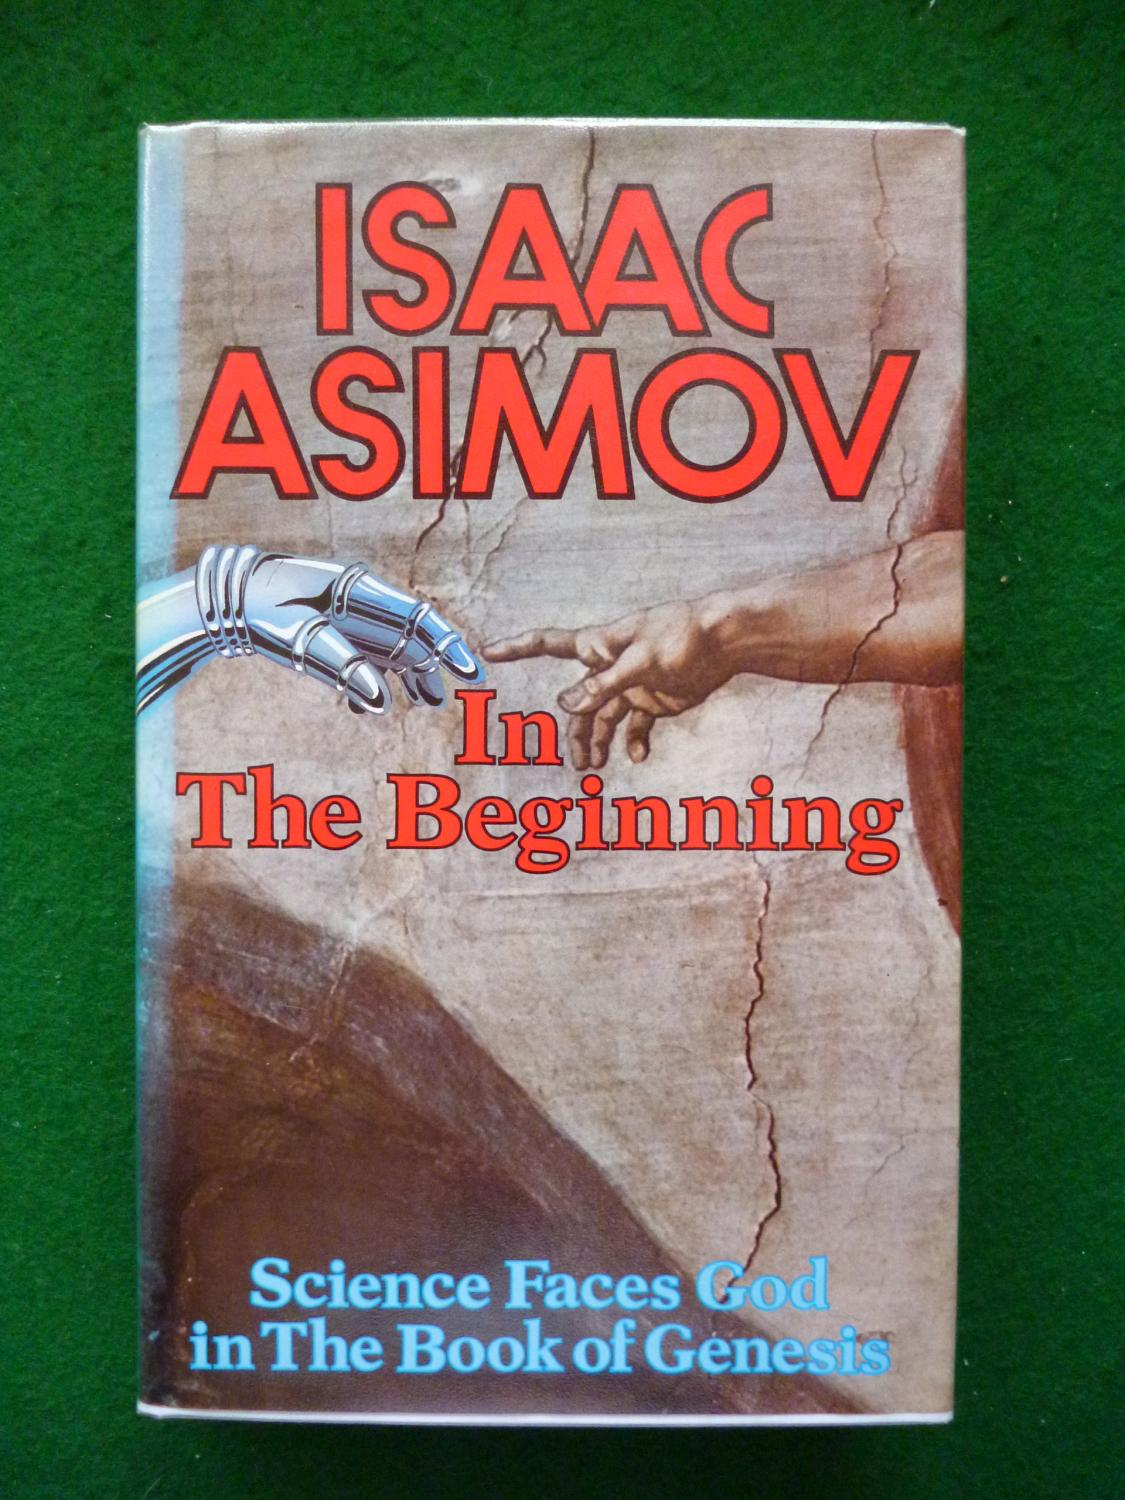 In The Beginning - Isaac Asimov